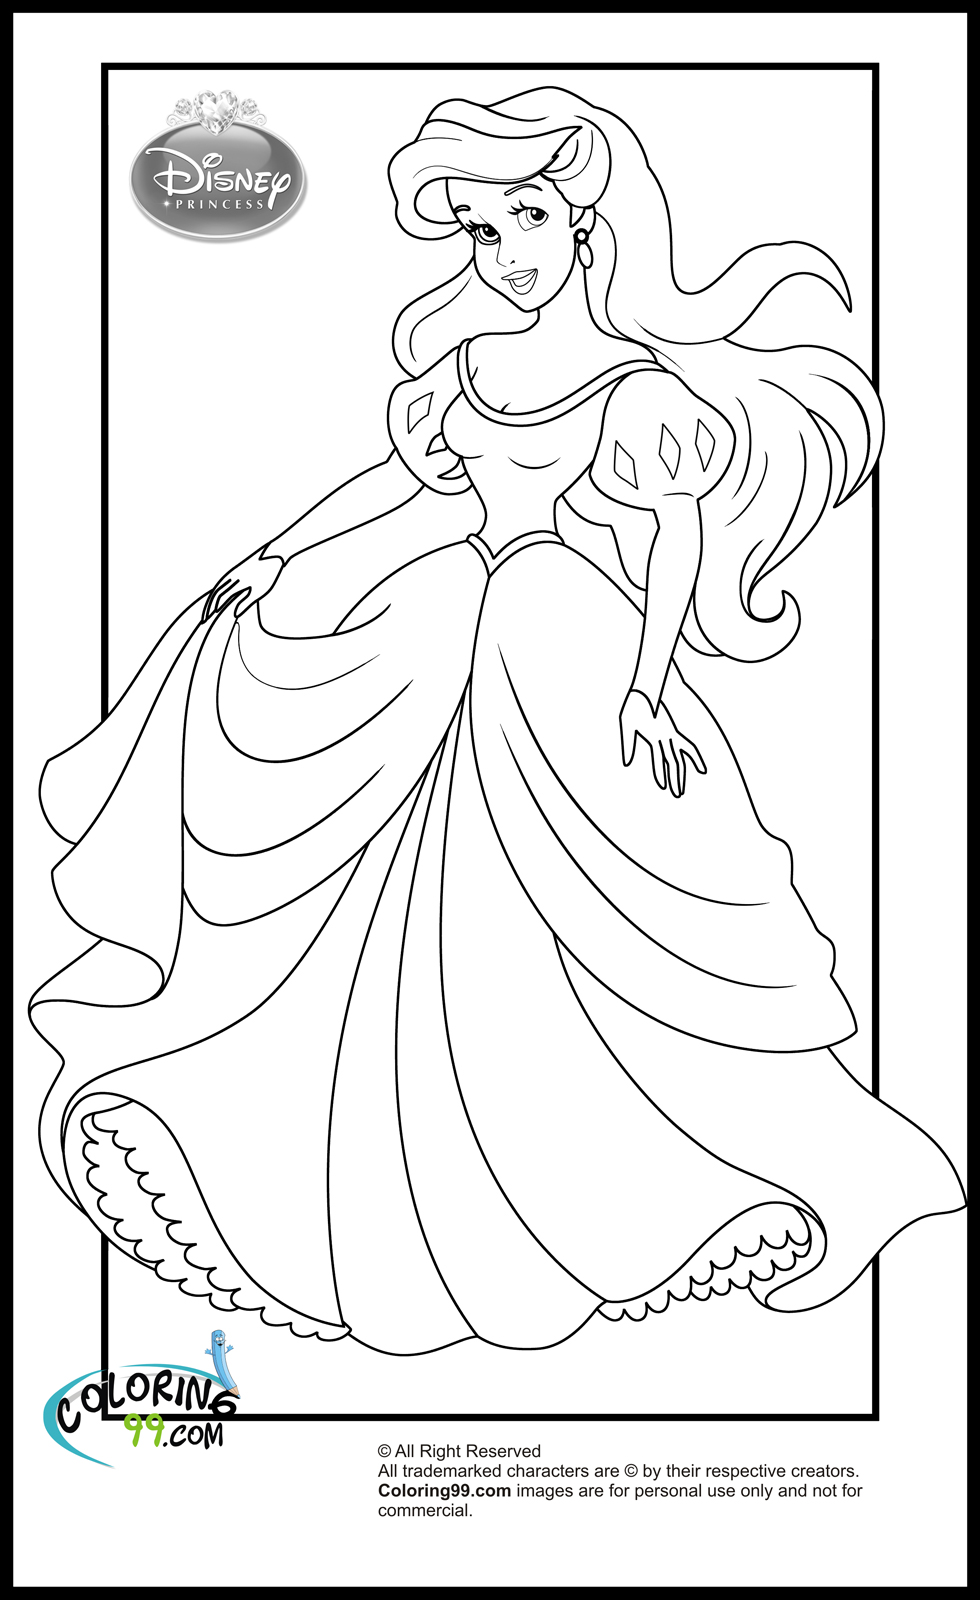 disney ariel coloring pages - photo#34